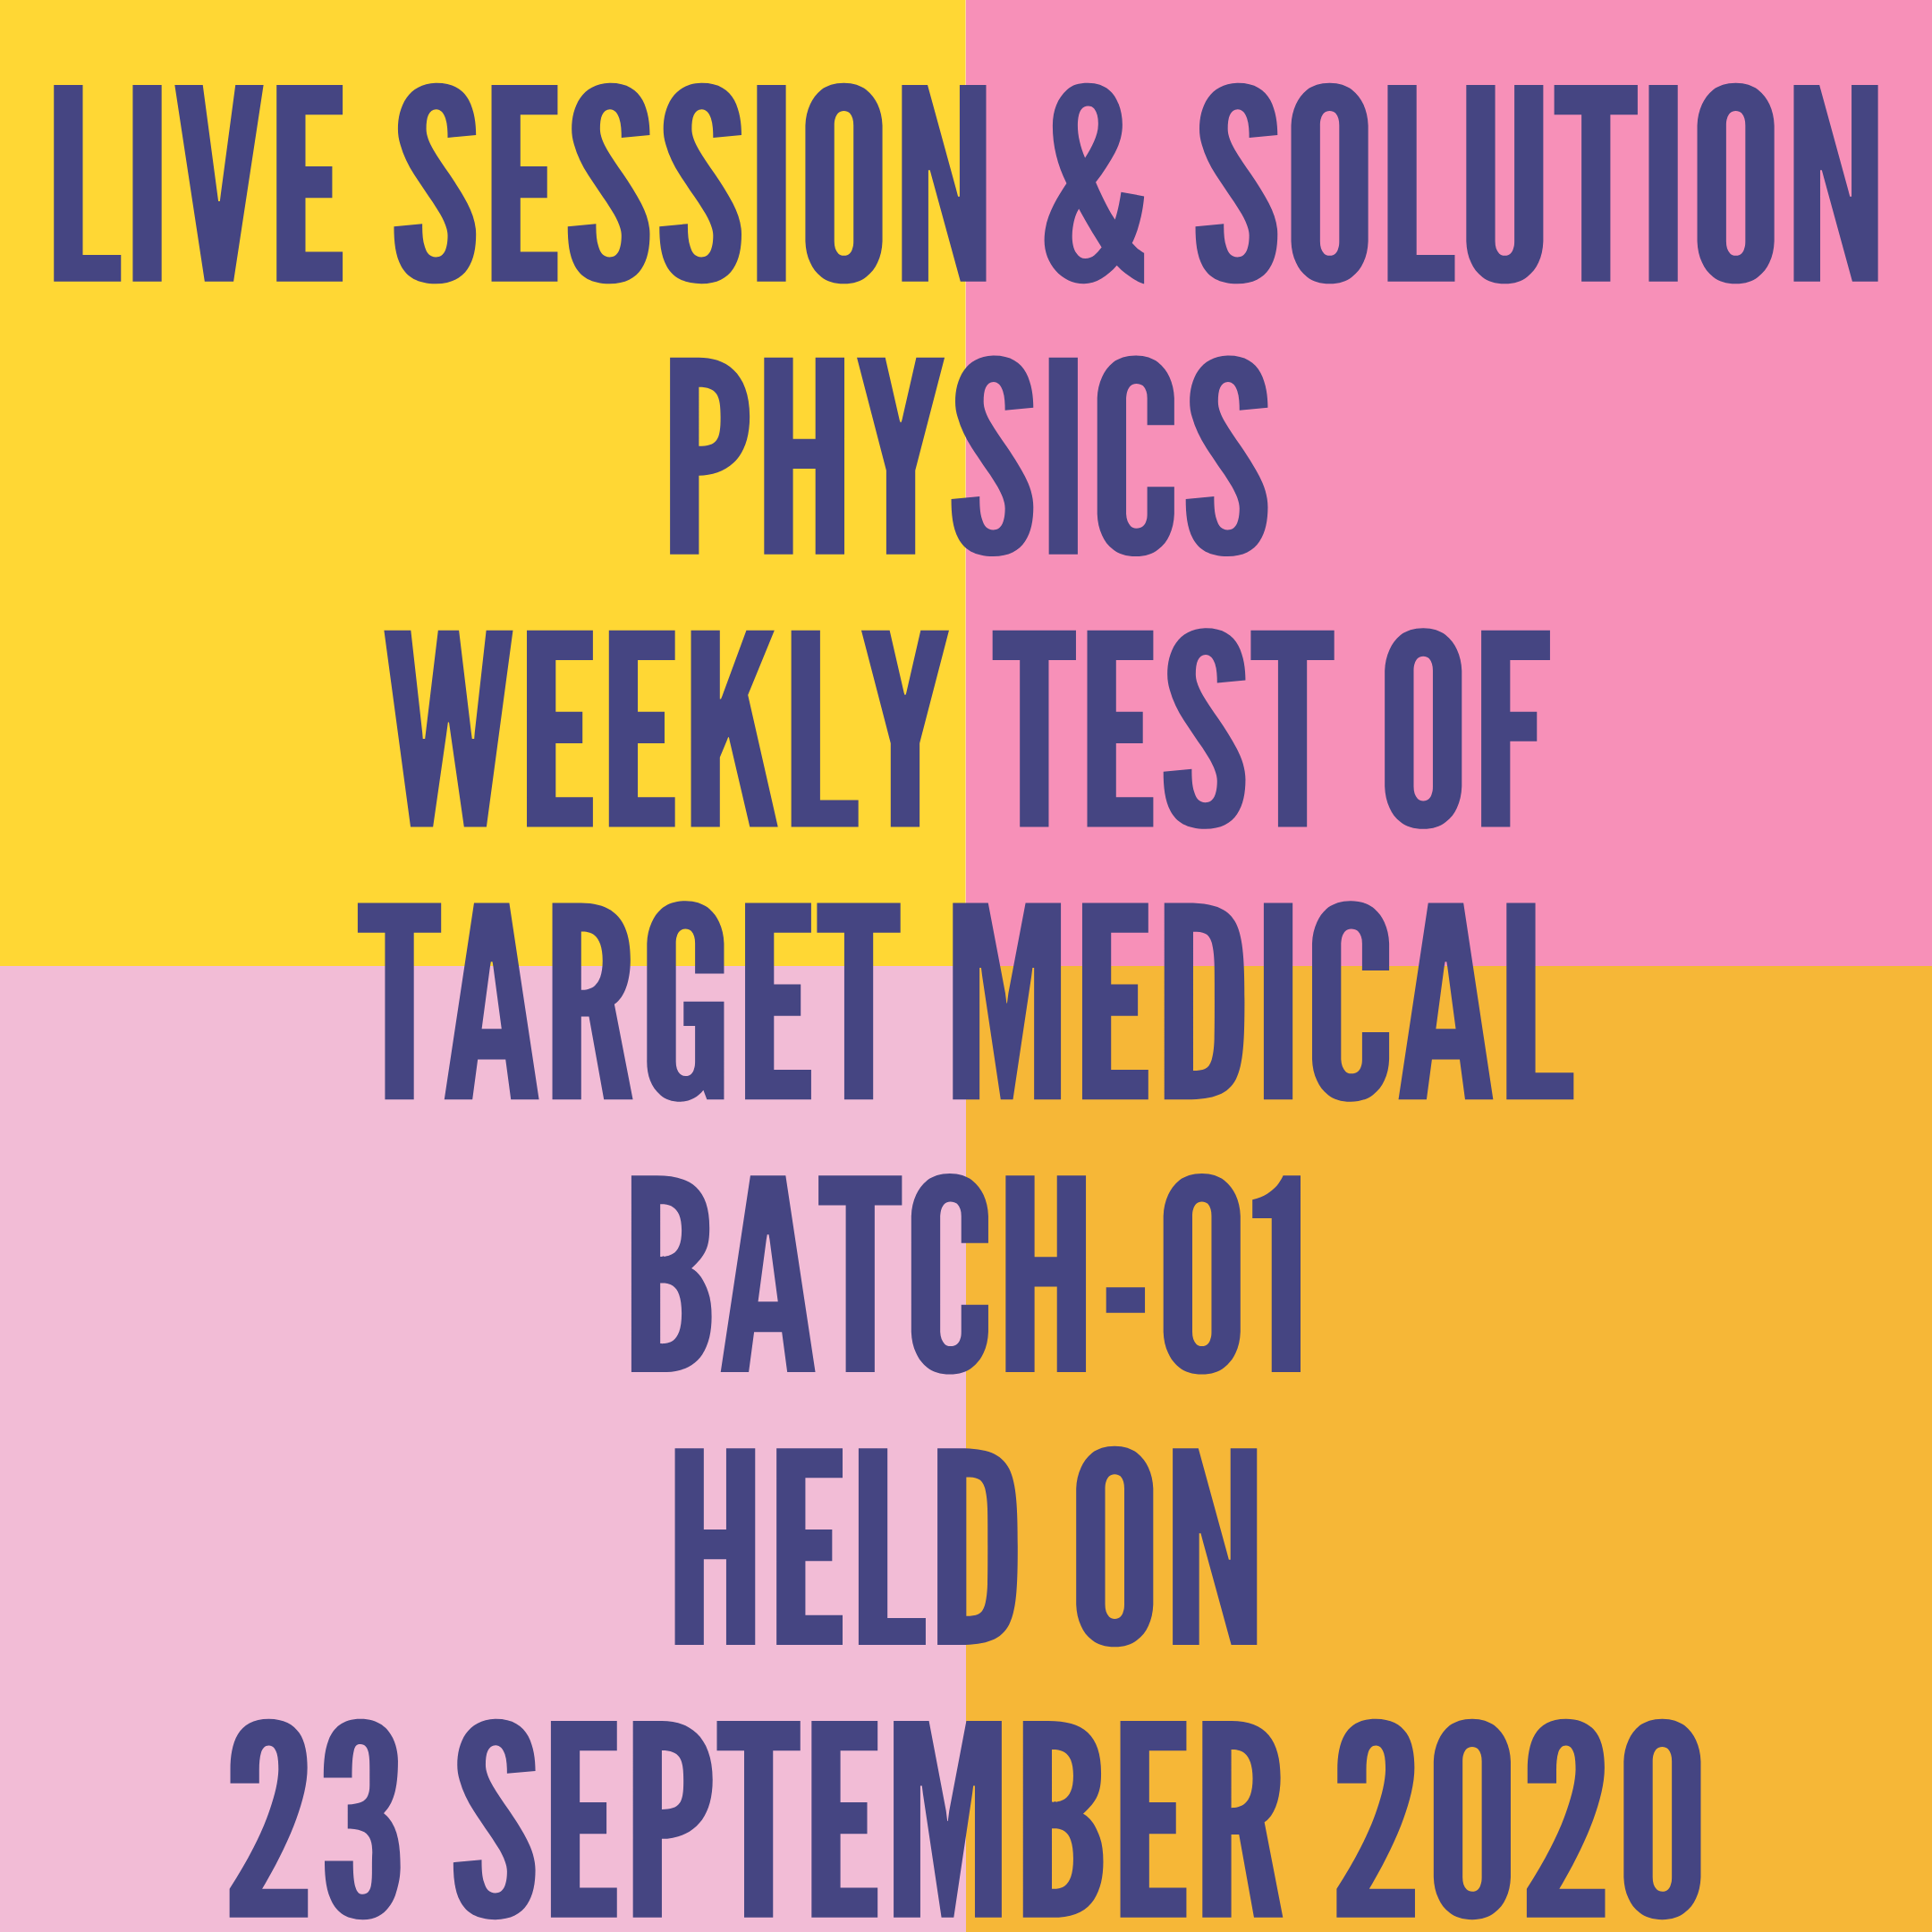 LIVE SESSION & SOLUTION PHYSICS WEEKLY TEST OF TARGET MEDICAL BATCH-01  HELD ON 23 SEPTEMBER 2020